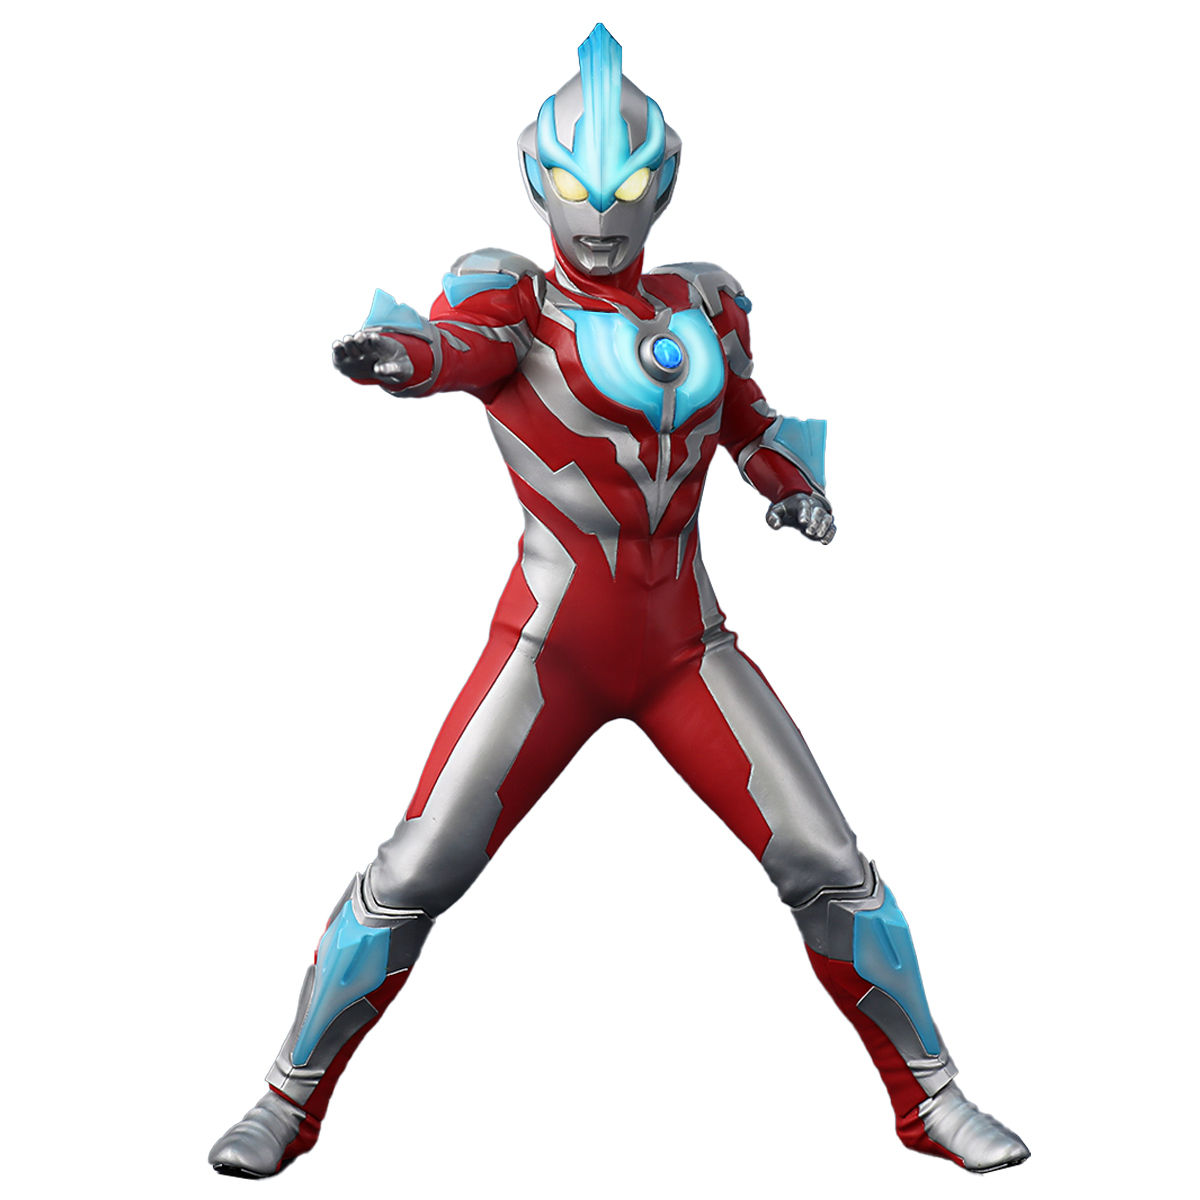 LARGE KAIJU SERIES ULTRA NEW GENERATION ULTRAMAN GINGA LIMITED EDITION